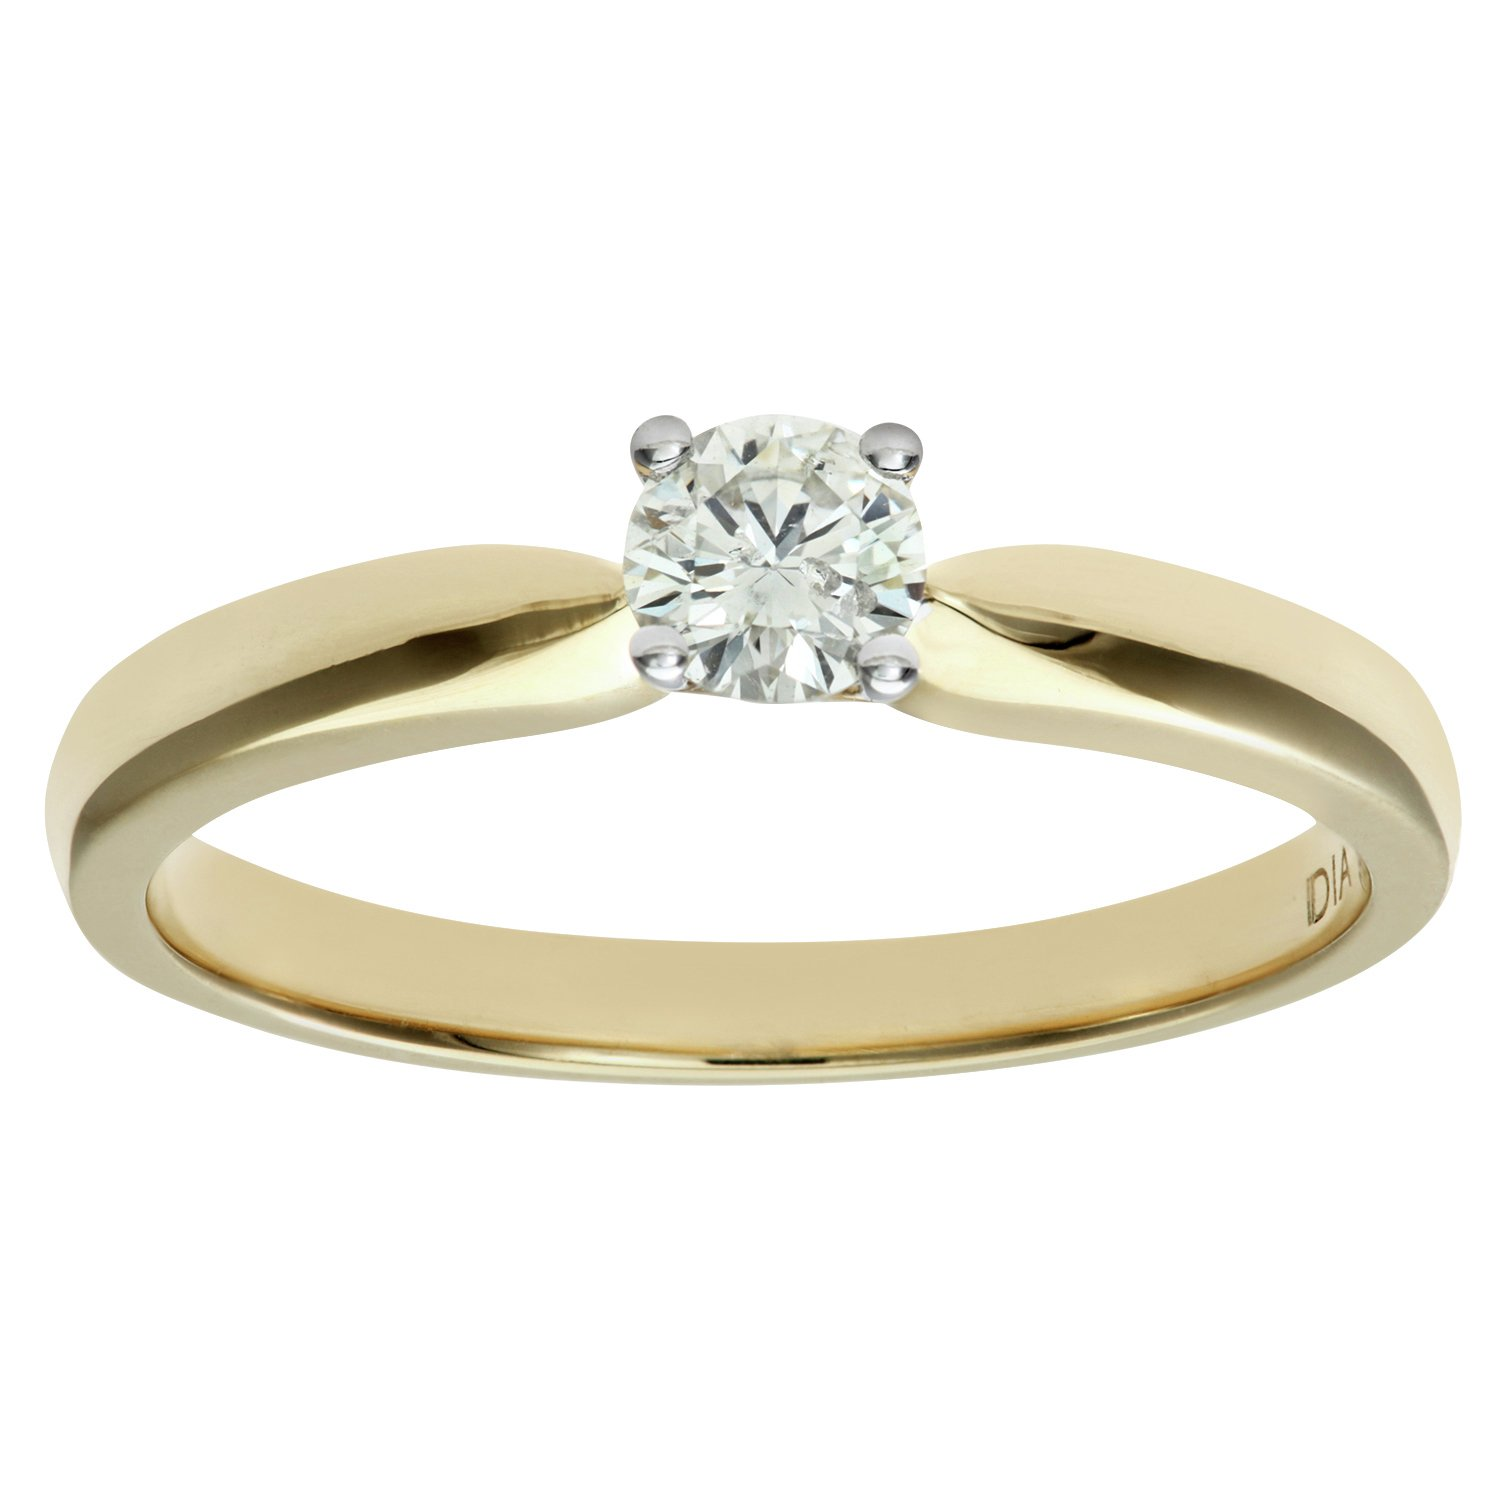 Made For You - 18 Carat 025 Carat Solitaire Ring - Size W